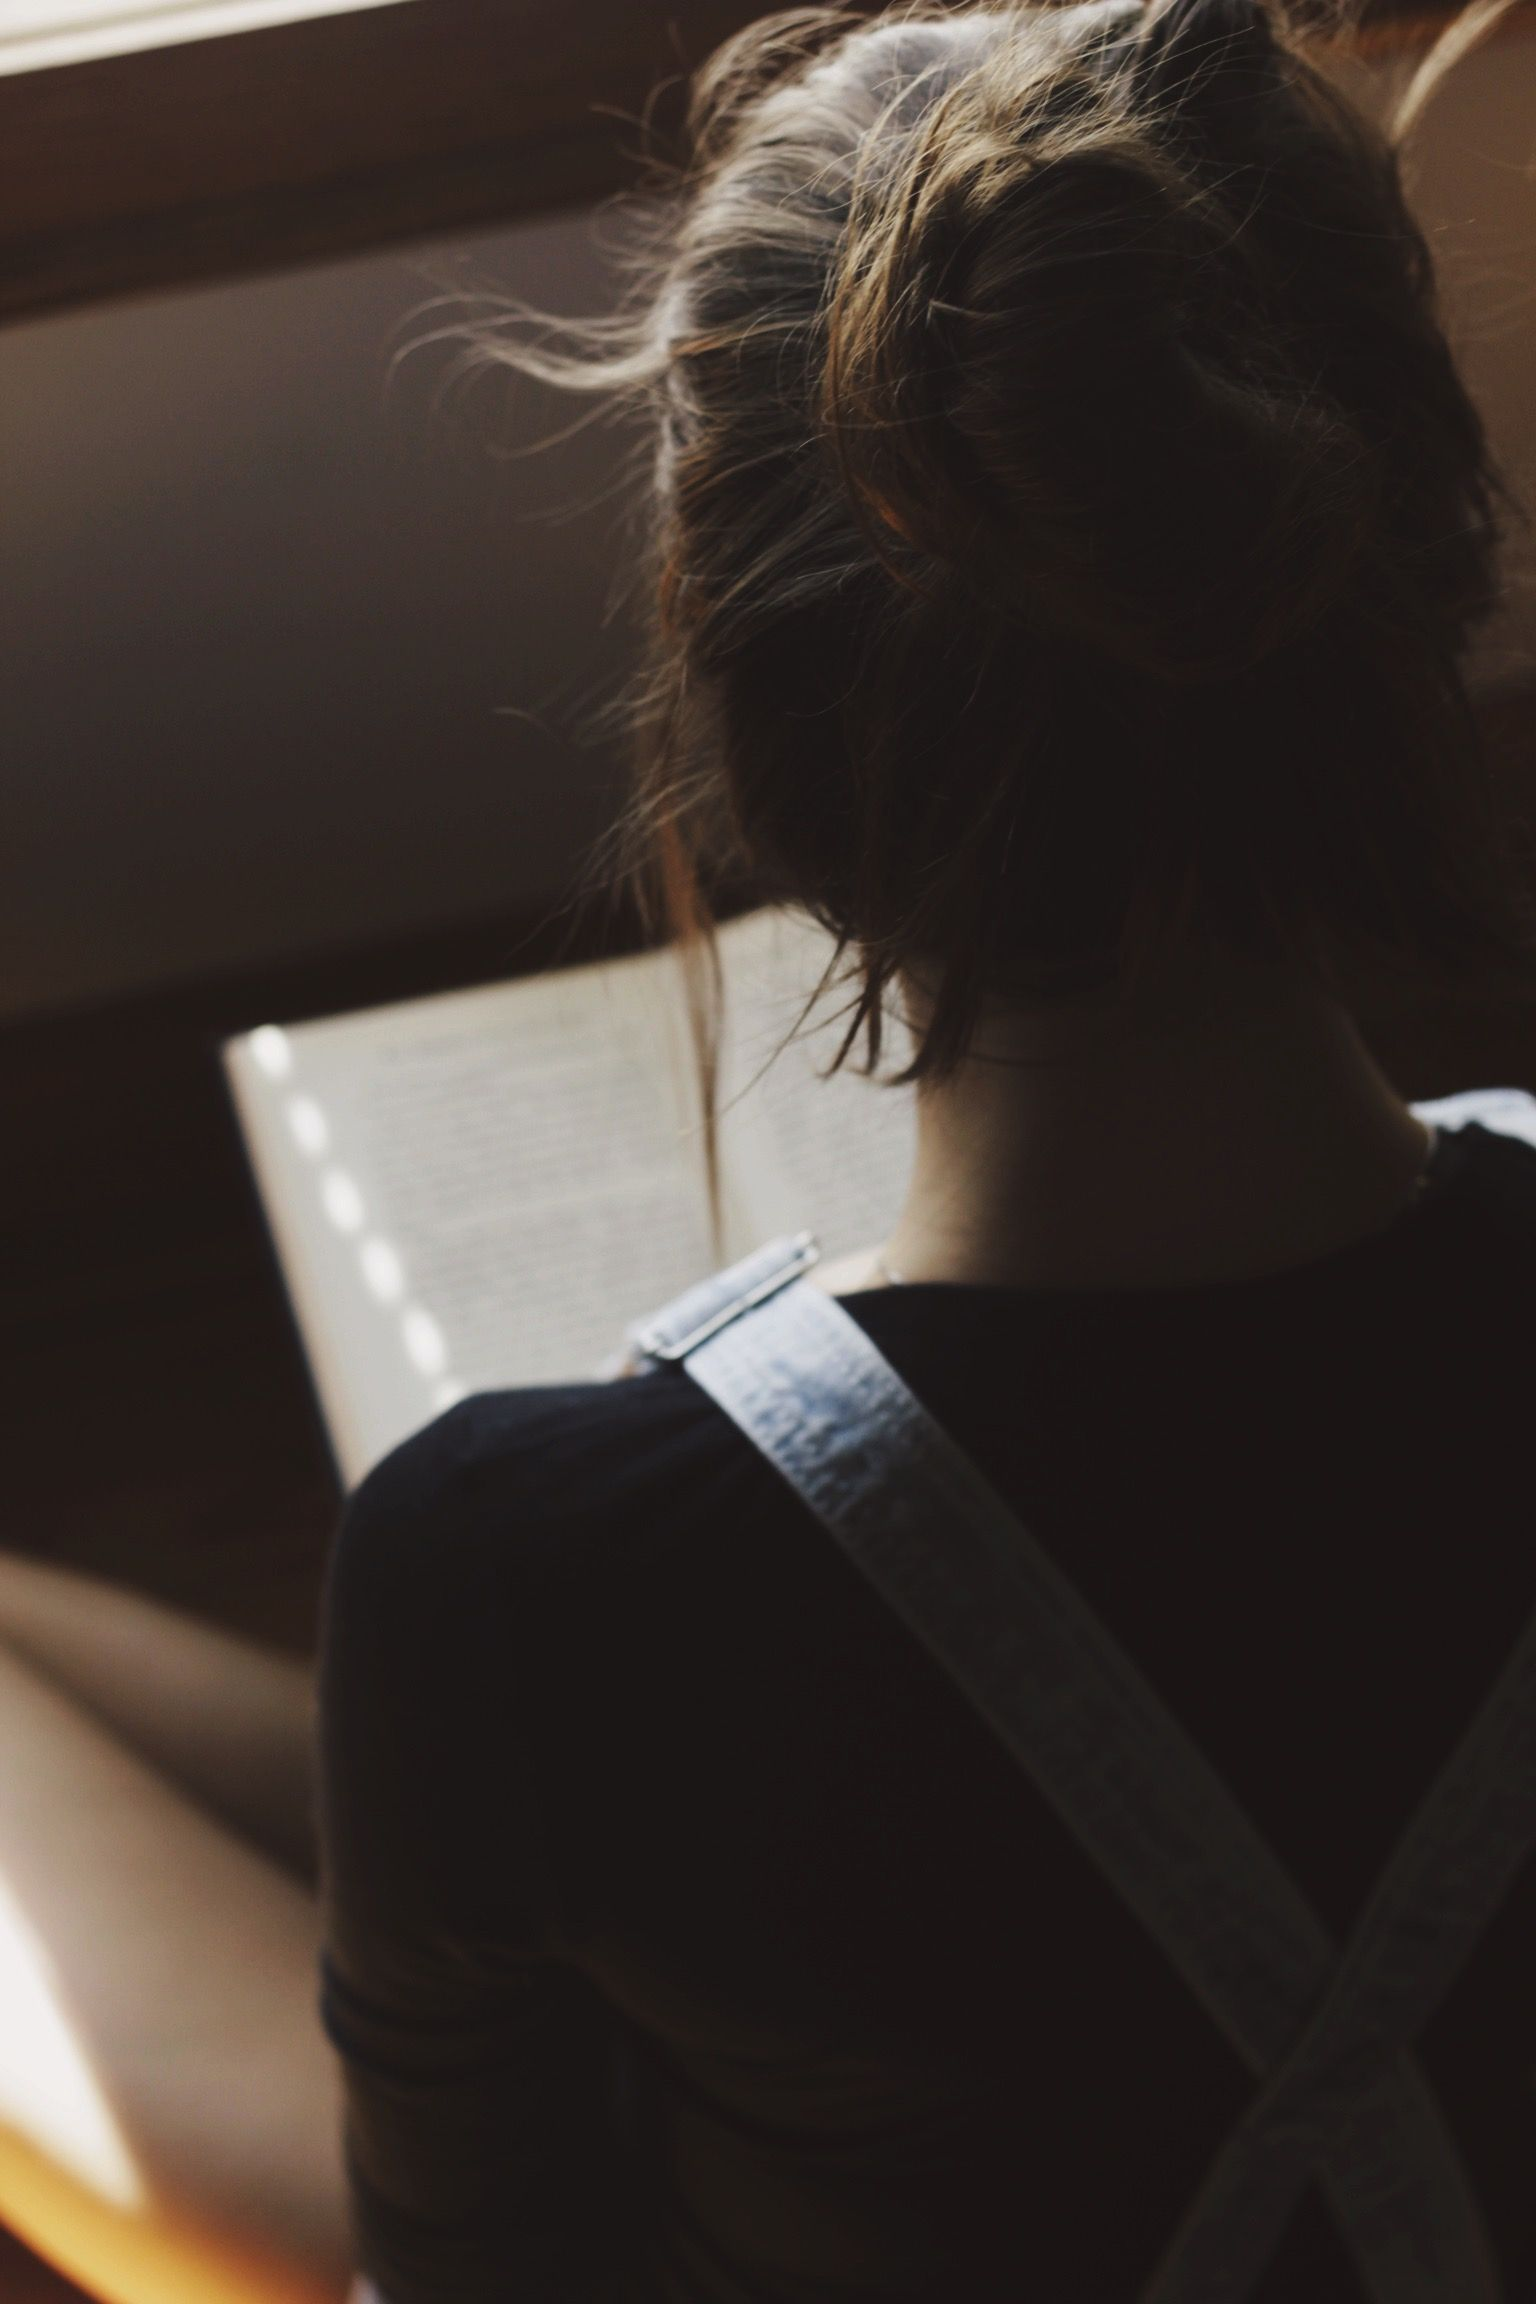 Messy bun hair photography chill hipster overalls books